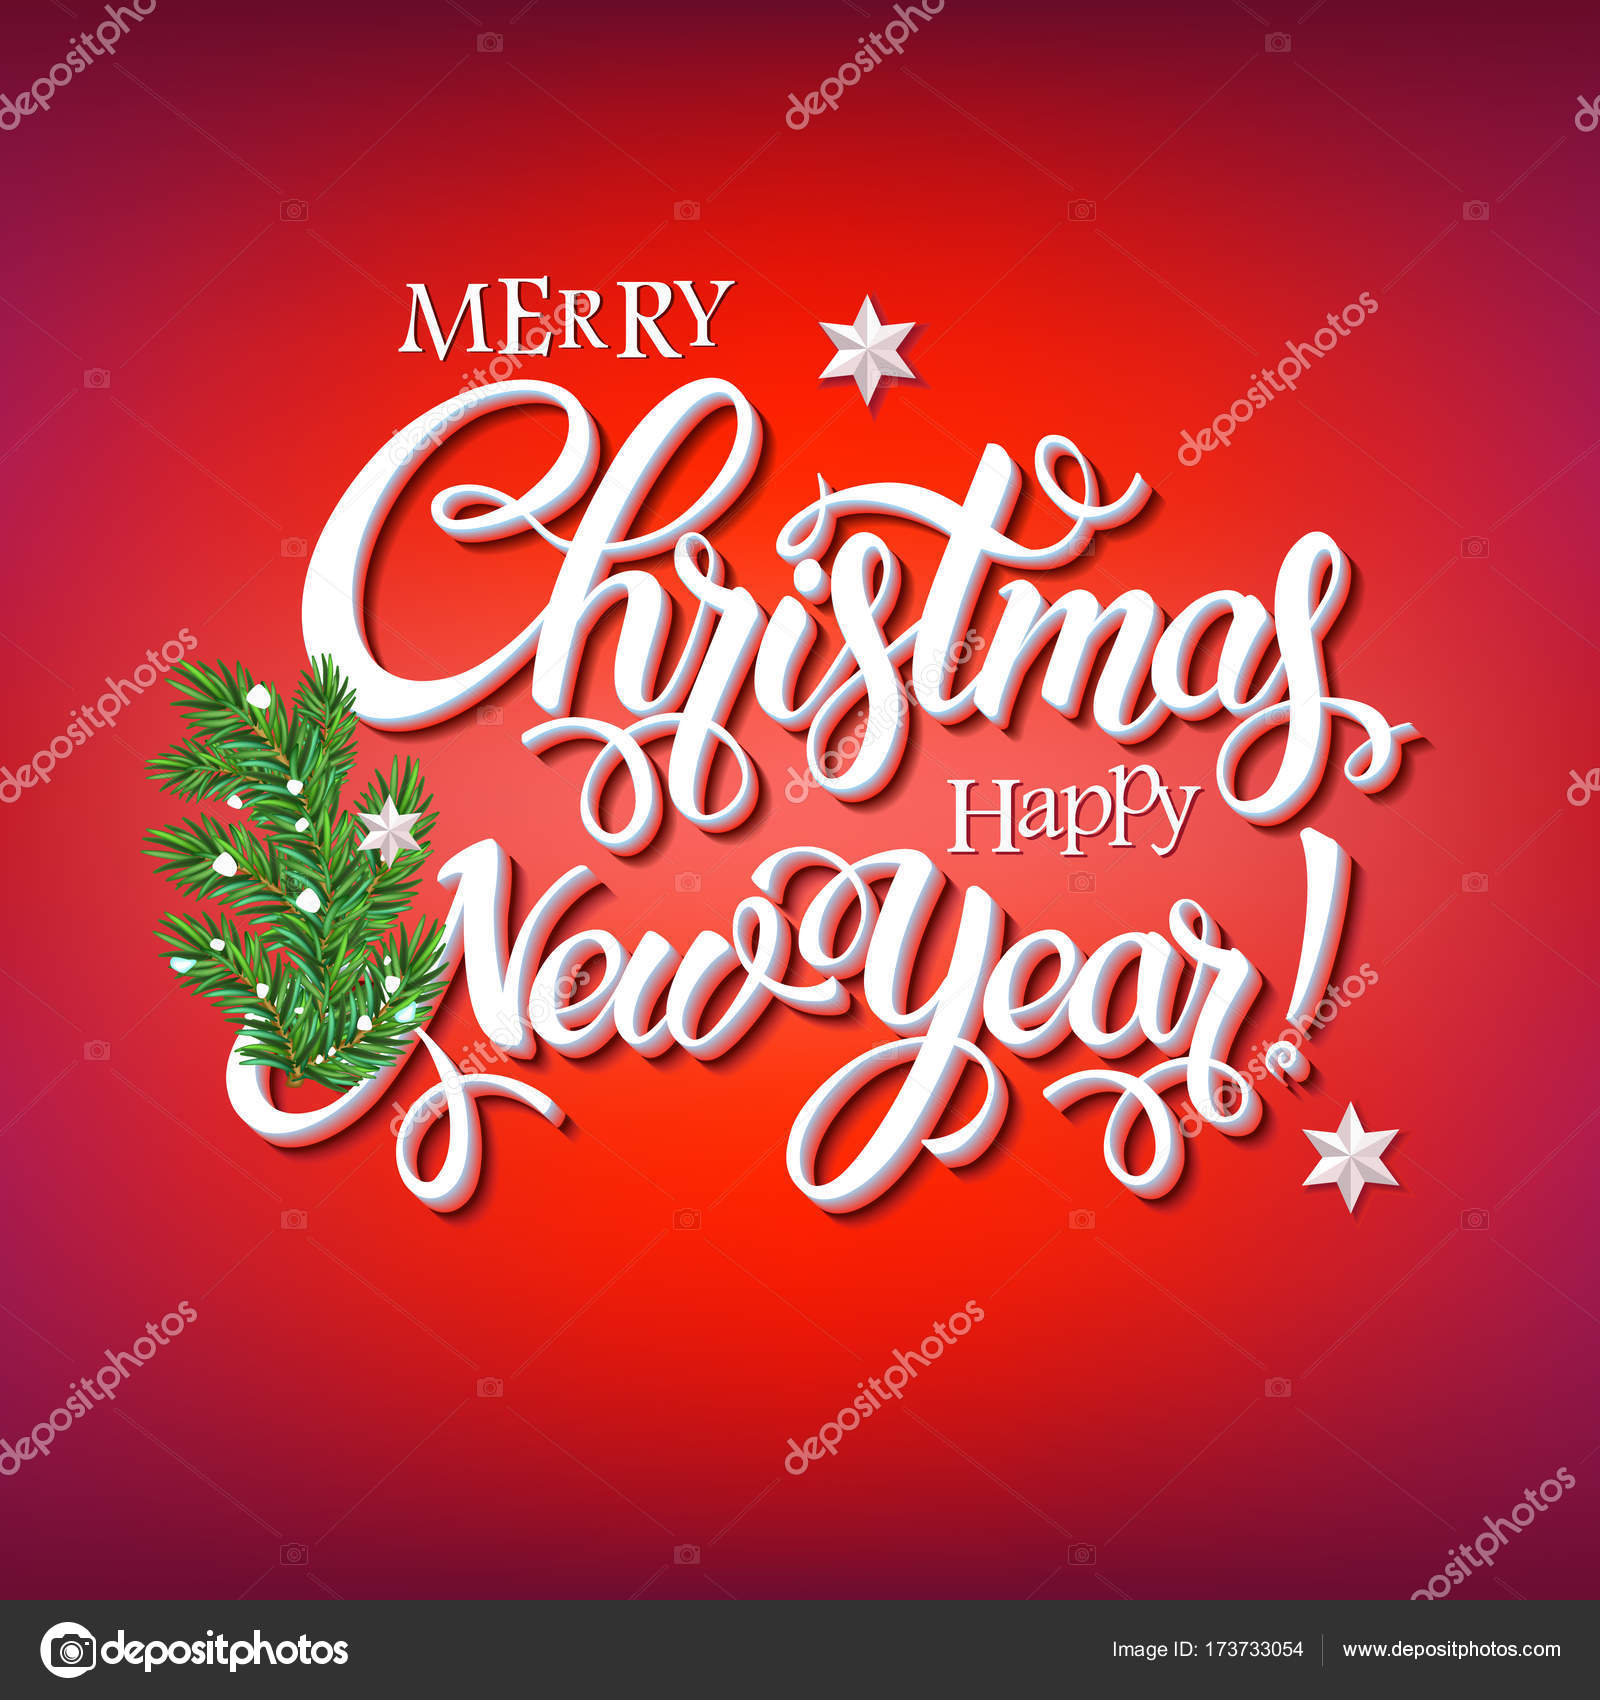 Merry Christmas Poster 2018.Merry Christmas 2018 Decoration Poster Card Stock Vector